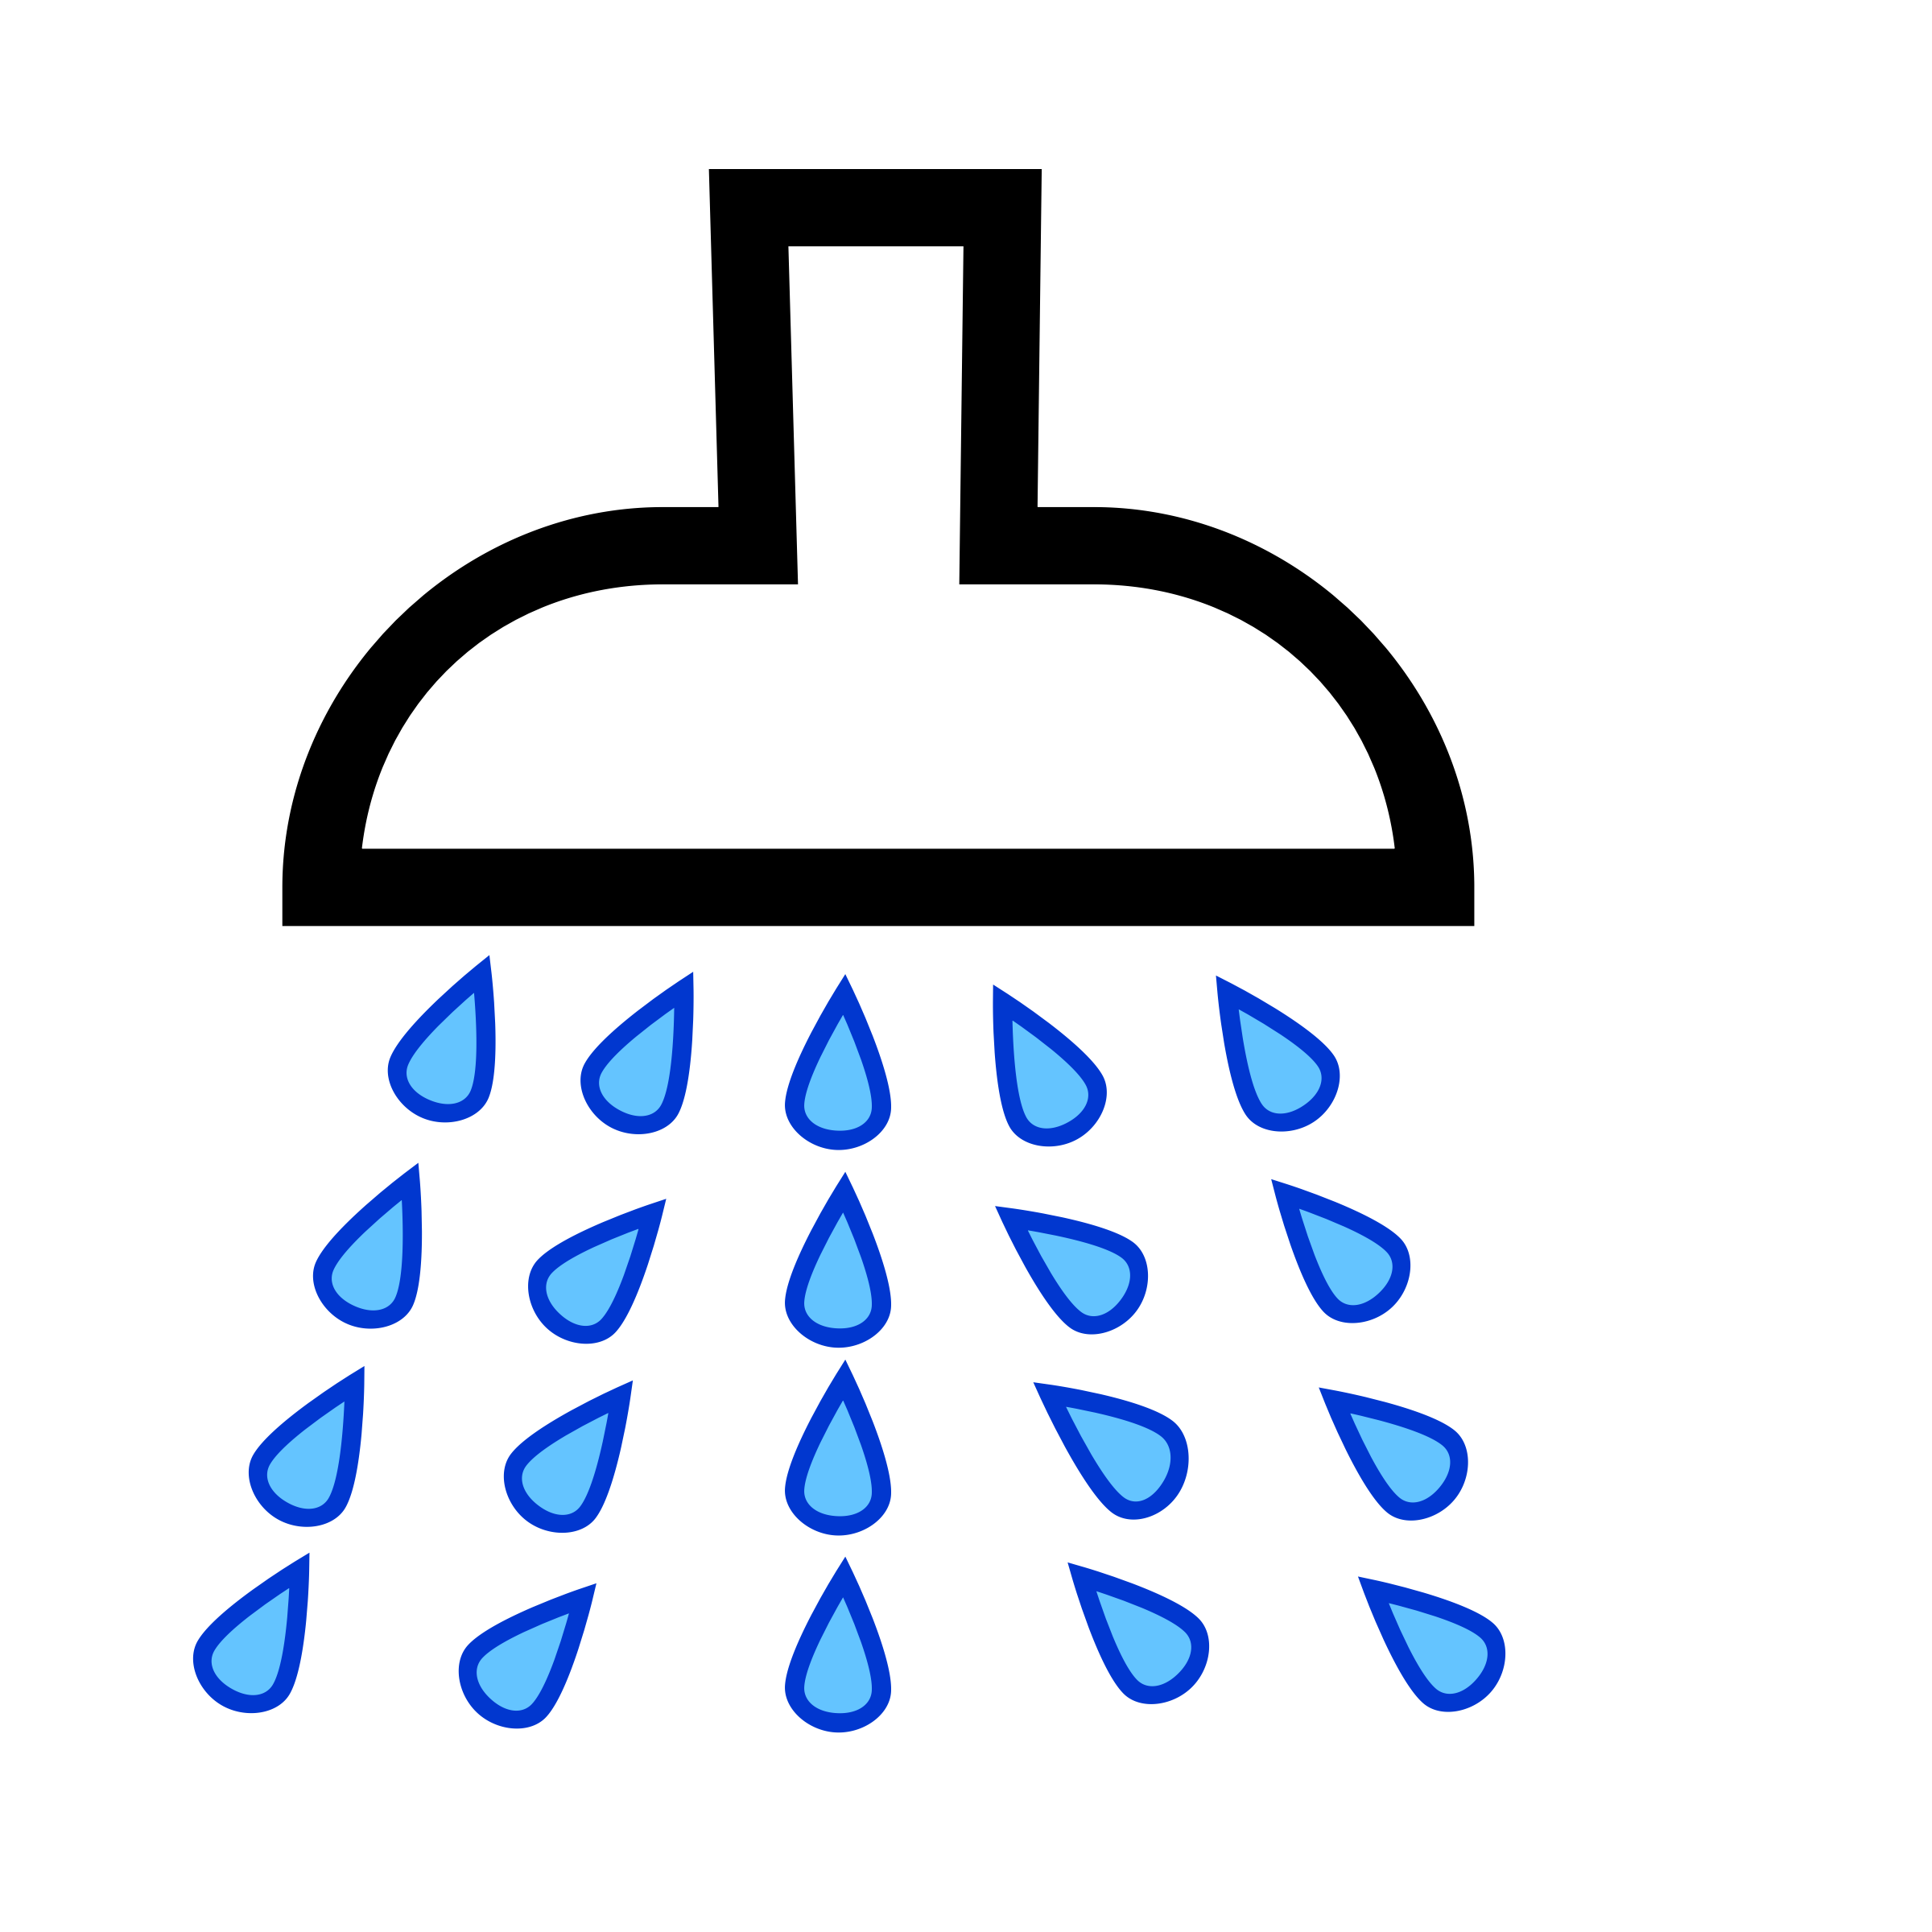 Shower Clip Art Free - Free Clipart Images .